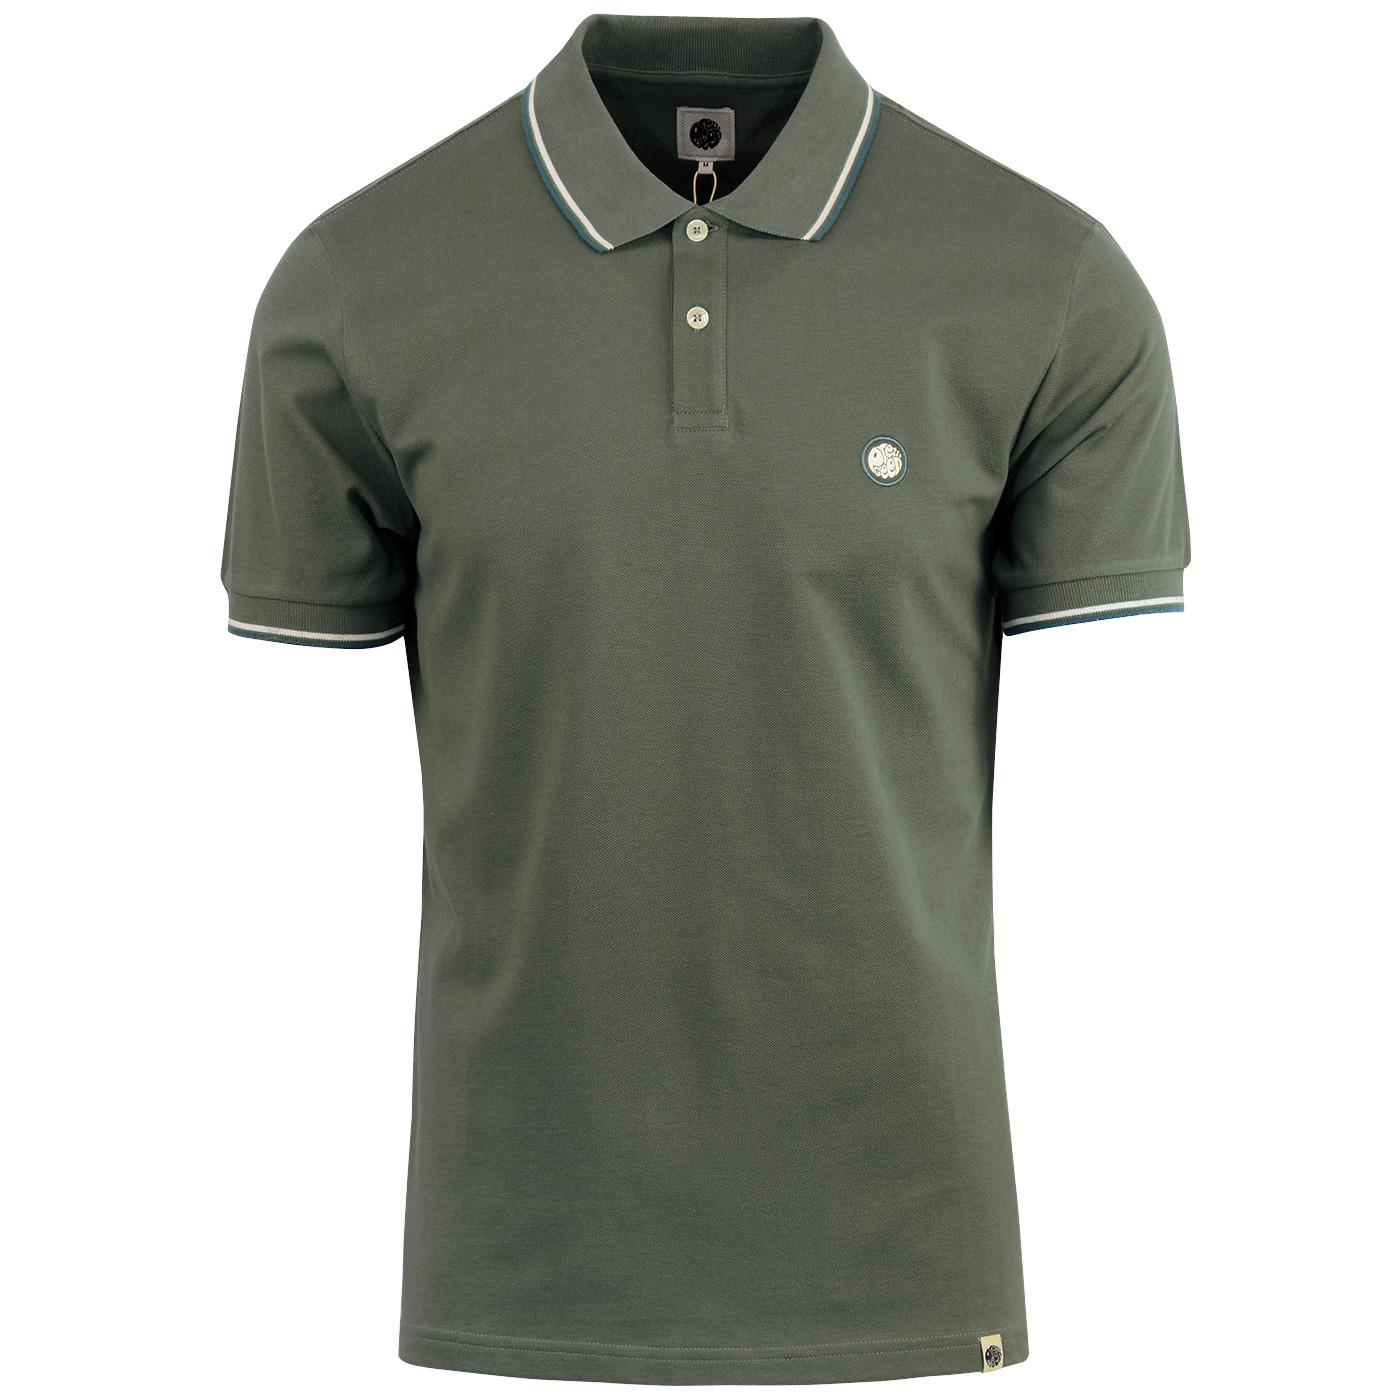 PRETTY GREEN Mod Twin Tipped Pique Polo - Green